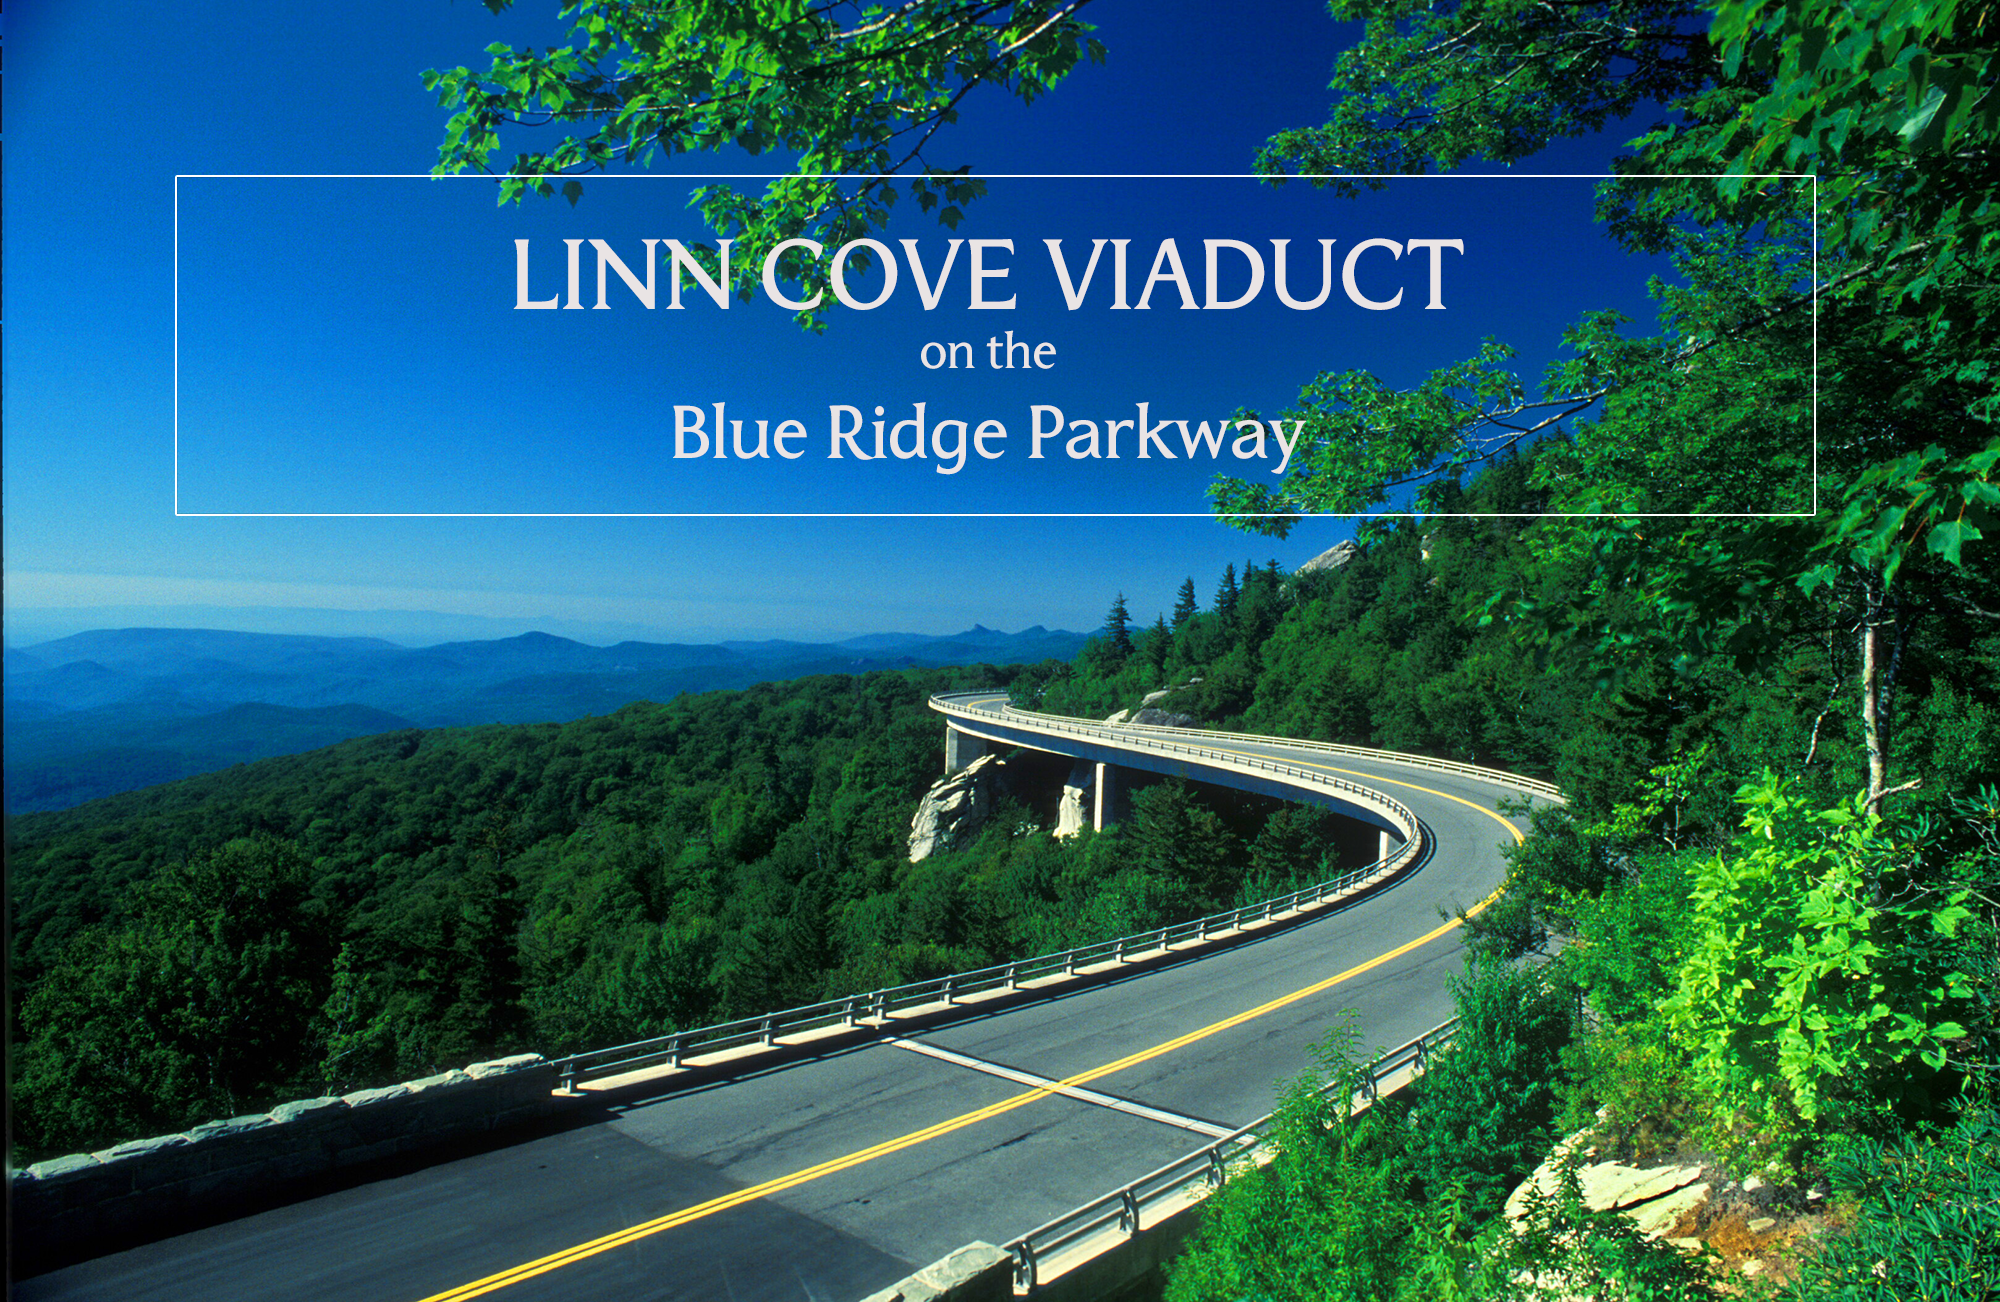 At Milepost 304.6, Linn Cove Viaduct is a must-see stop on the Blue Ridge Parkway. #visitnc